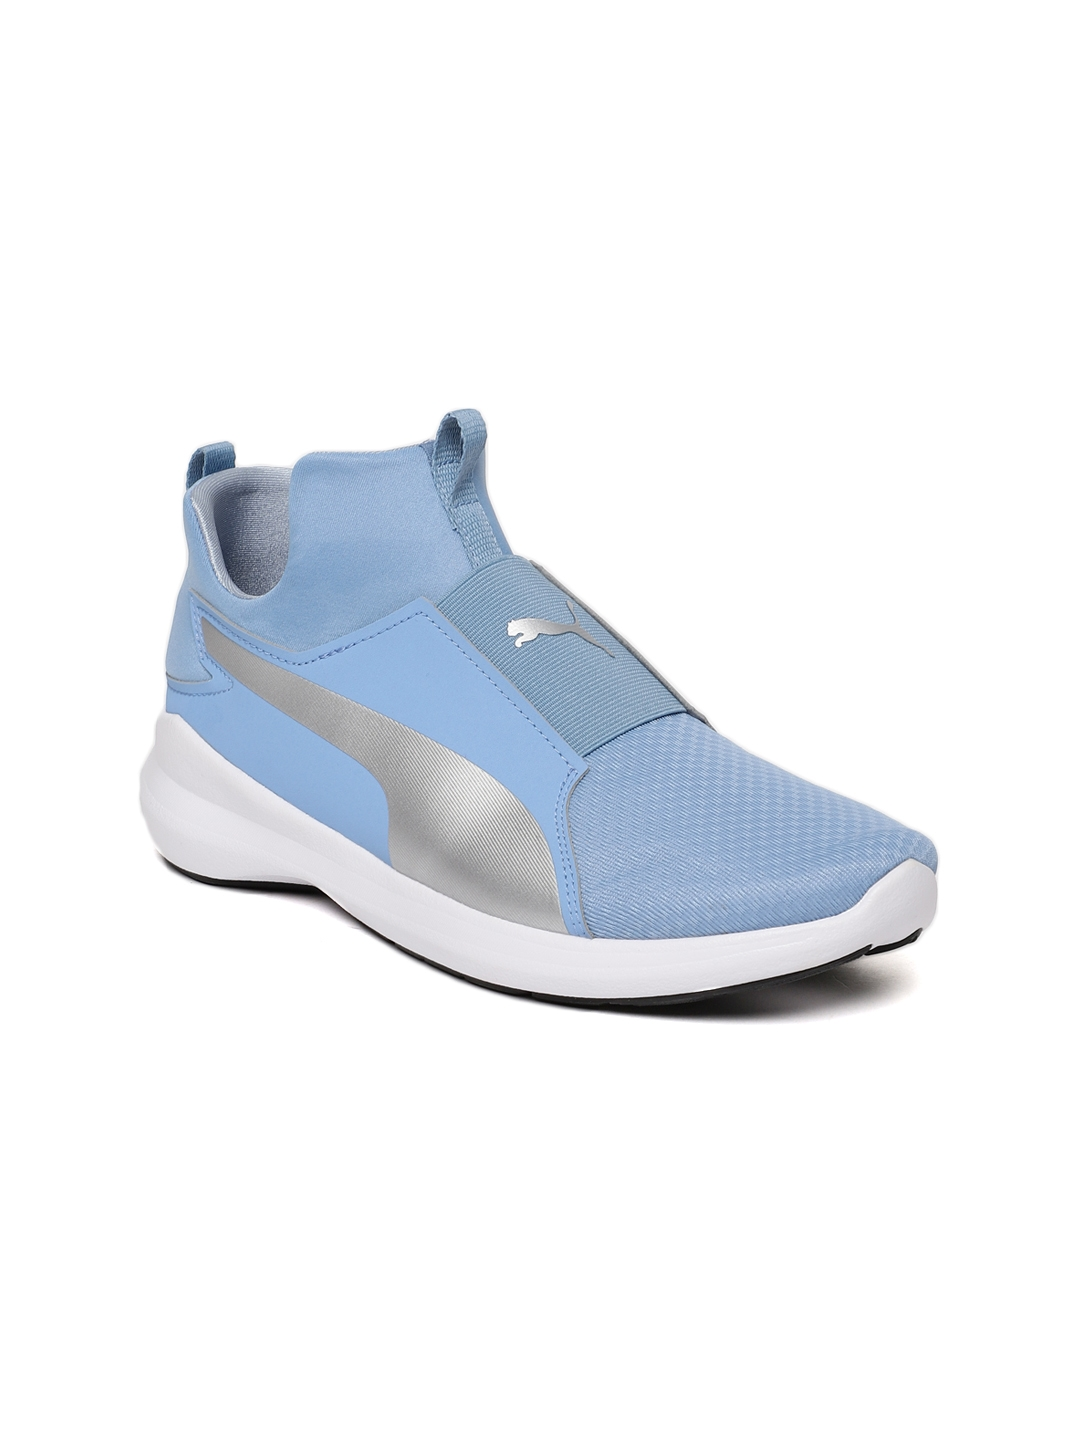 6dbab505f6ddc8 Buy Puma Women Blue Rebel Mid Sneakers - Casual Shoes for Women ...